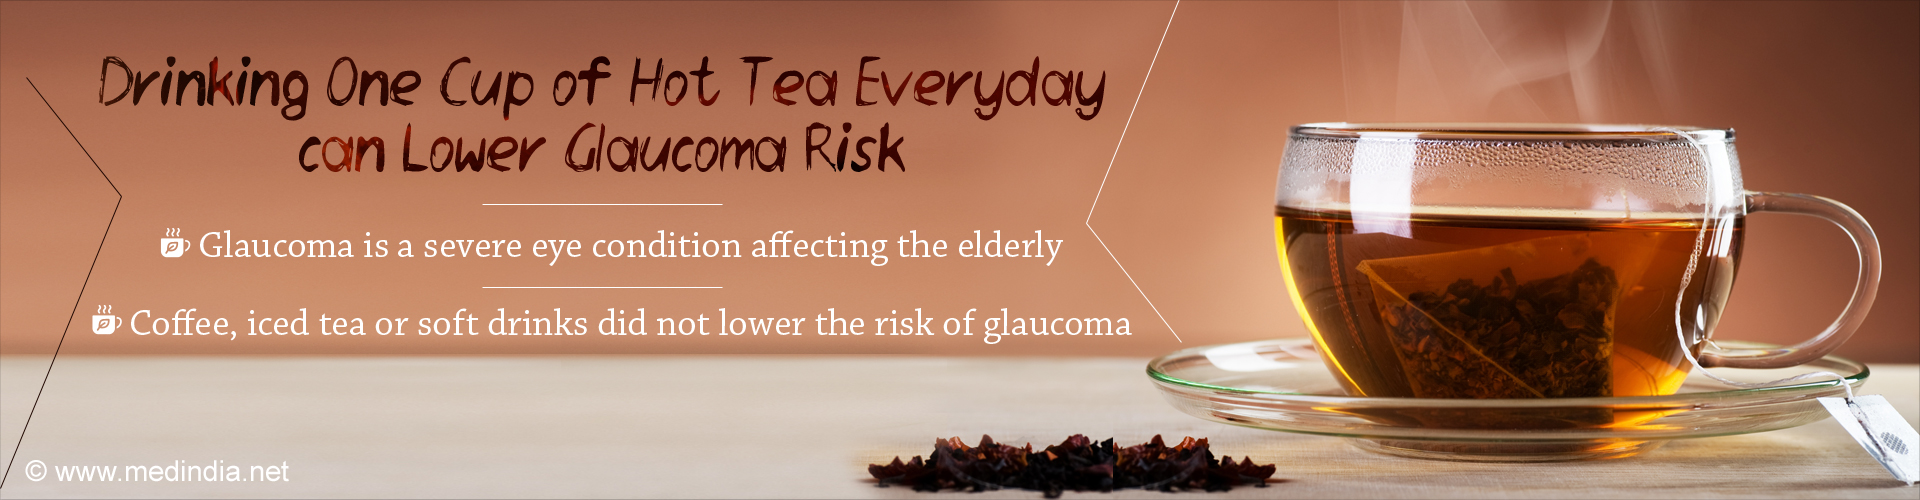 One Cup of Hot Tea Everyday can Lower Glaucoma Risk